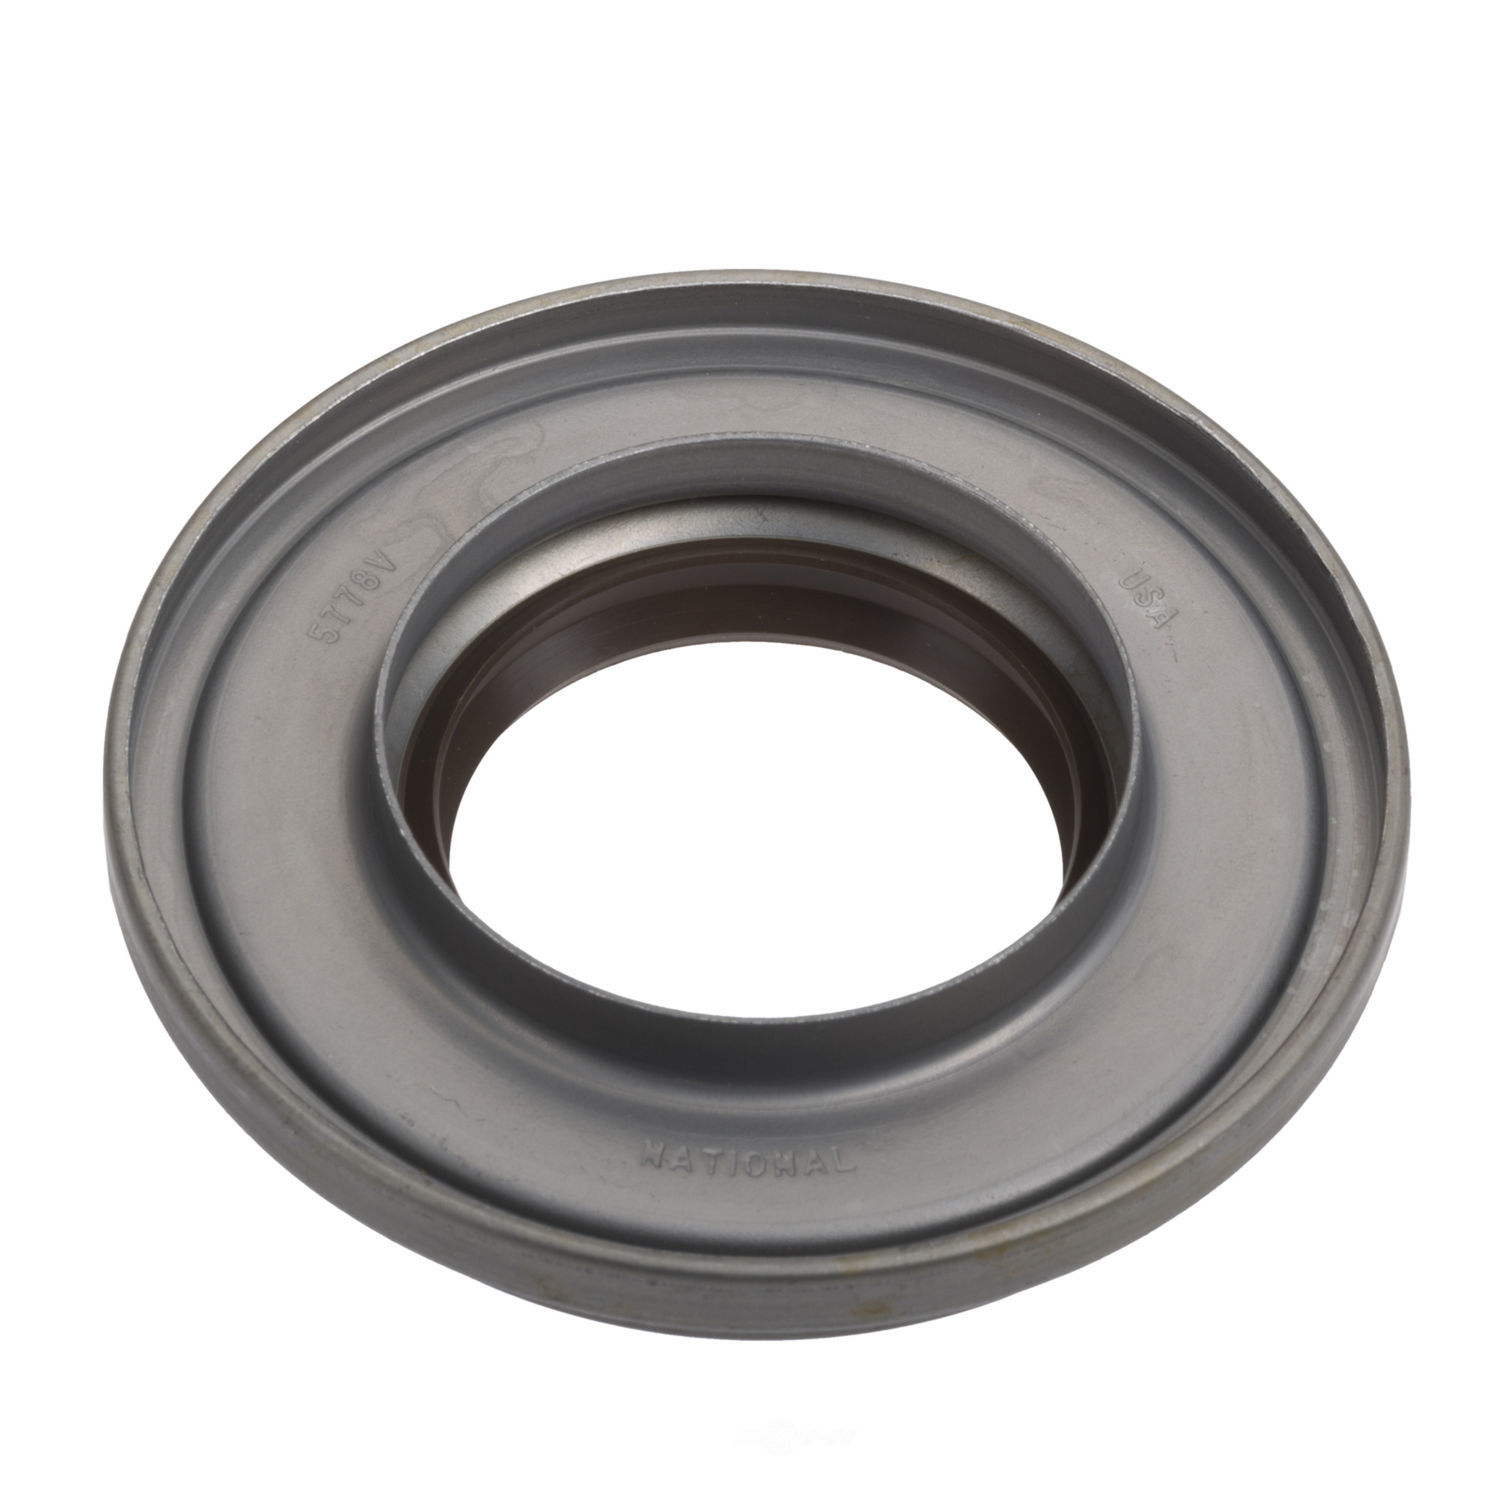 AUTO EXTRA/BEARING-SEALS-HUB ASSEMBLIES - Differential Pinion Seal (Front Outer) - AXJ 5778V